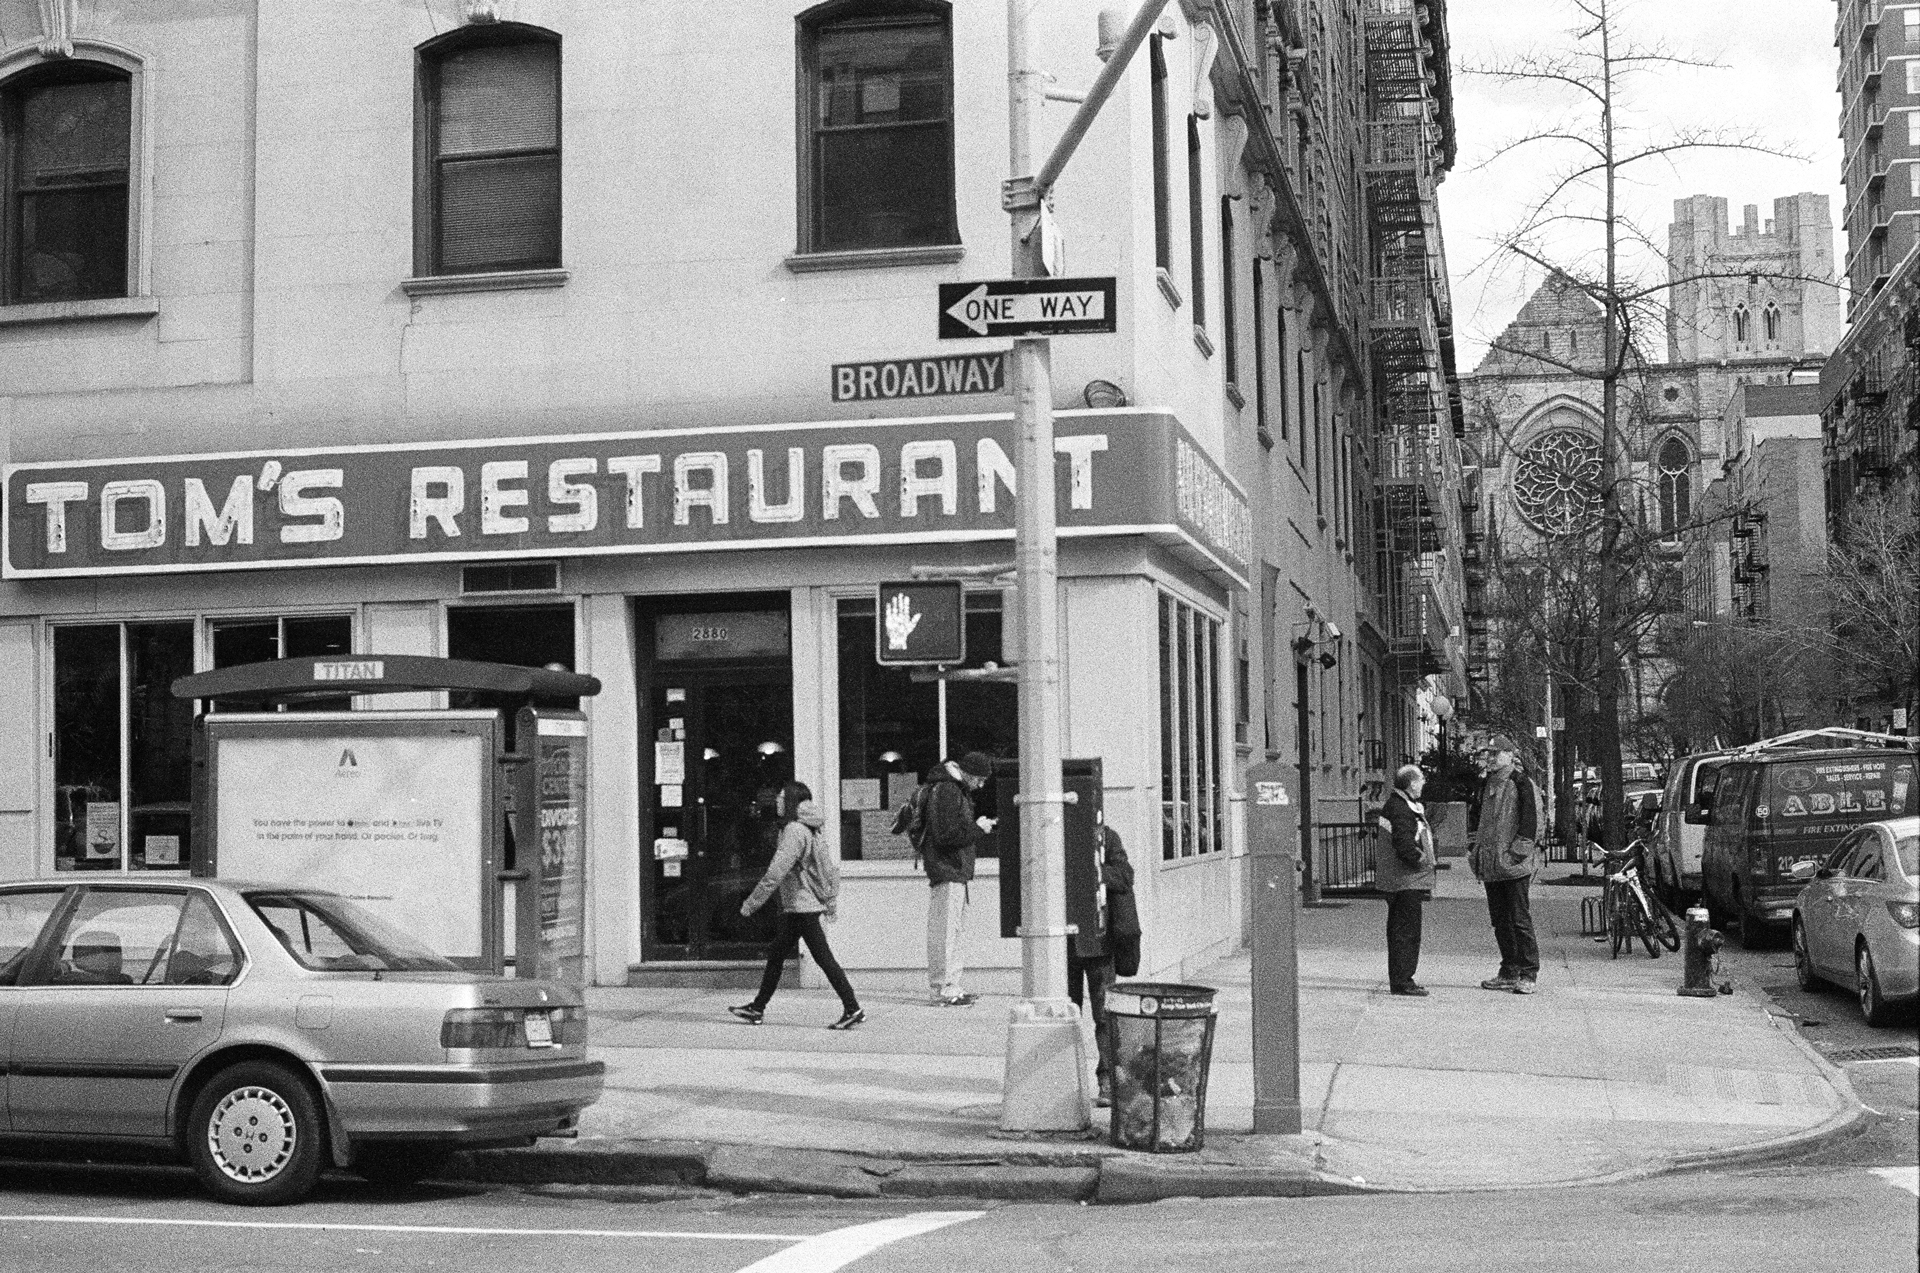 Tom's Restaurant NYC by Gian Franco Morini